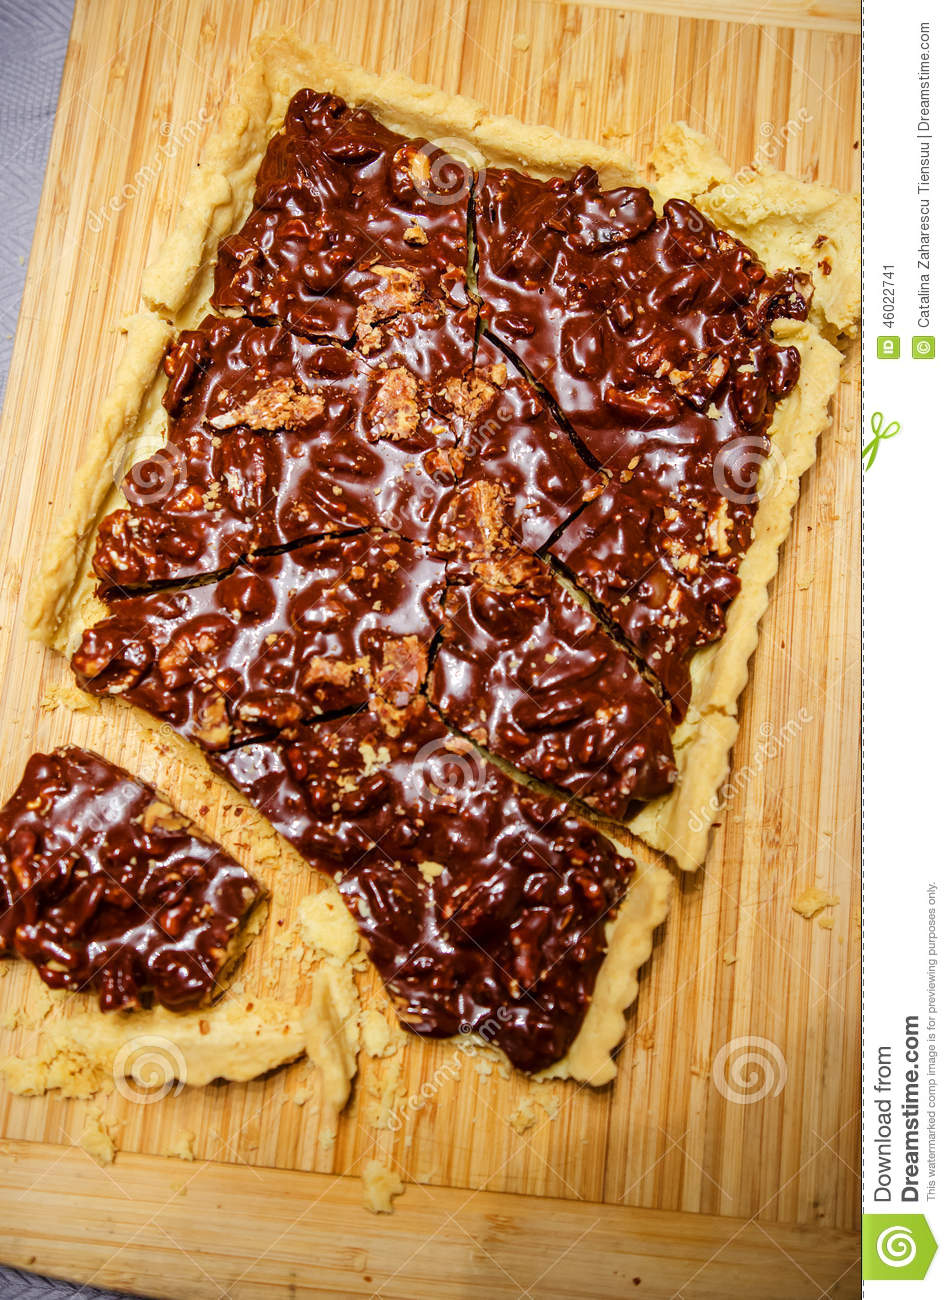 Cracked Pecan Caramel Tart Stock Photo - Image: 46022741